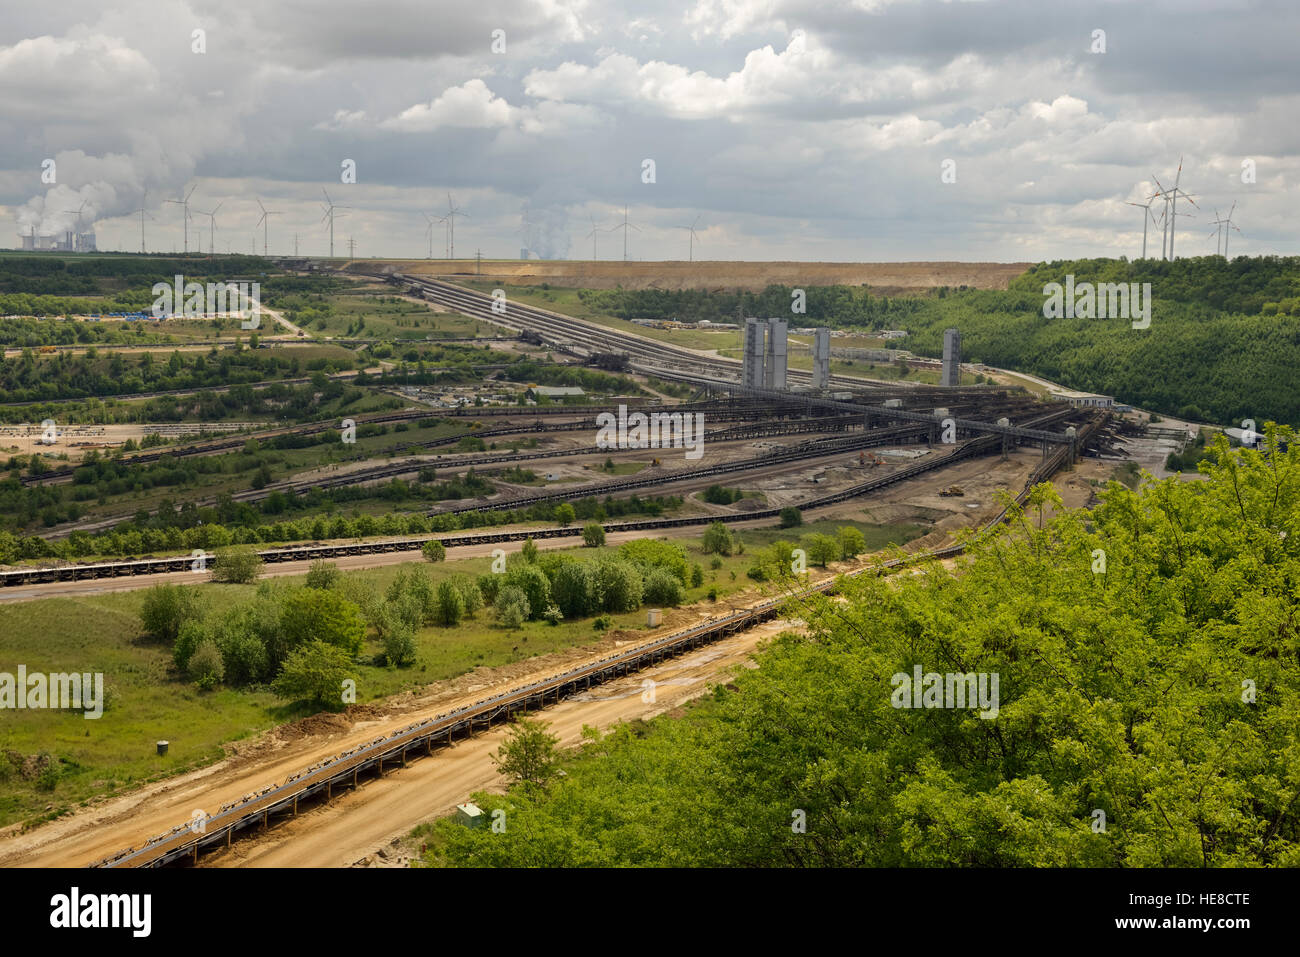 Parts of Garzweiler surface mine, shot from Jackerath viewpoint, with power plants and wind turbines behind. - Stock Image